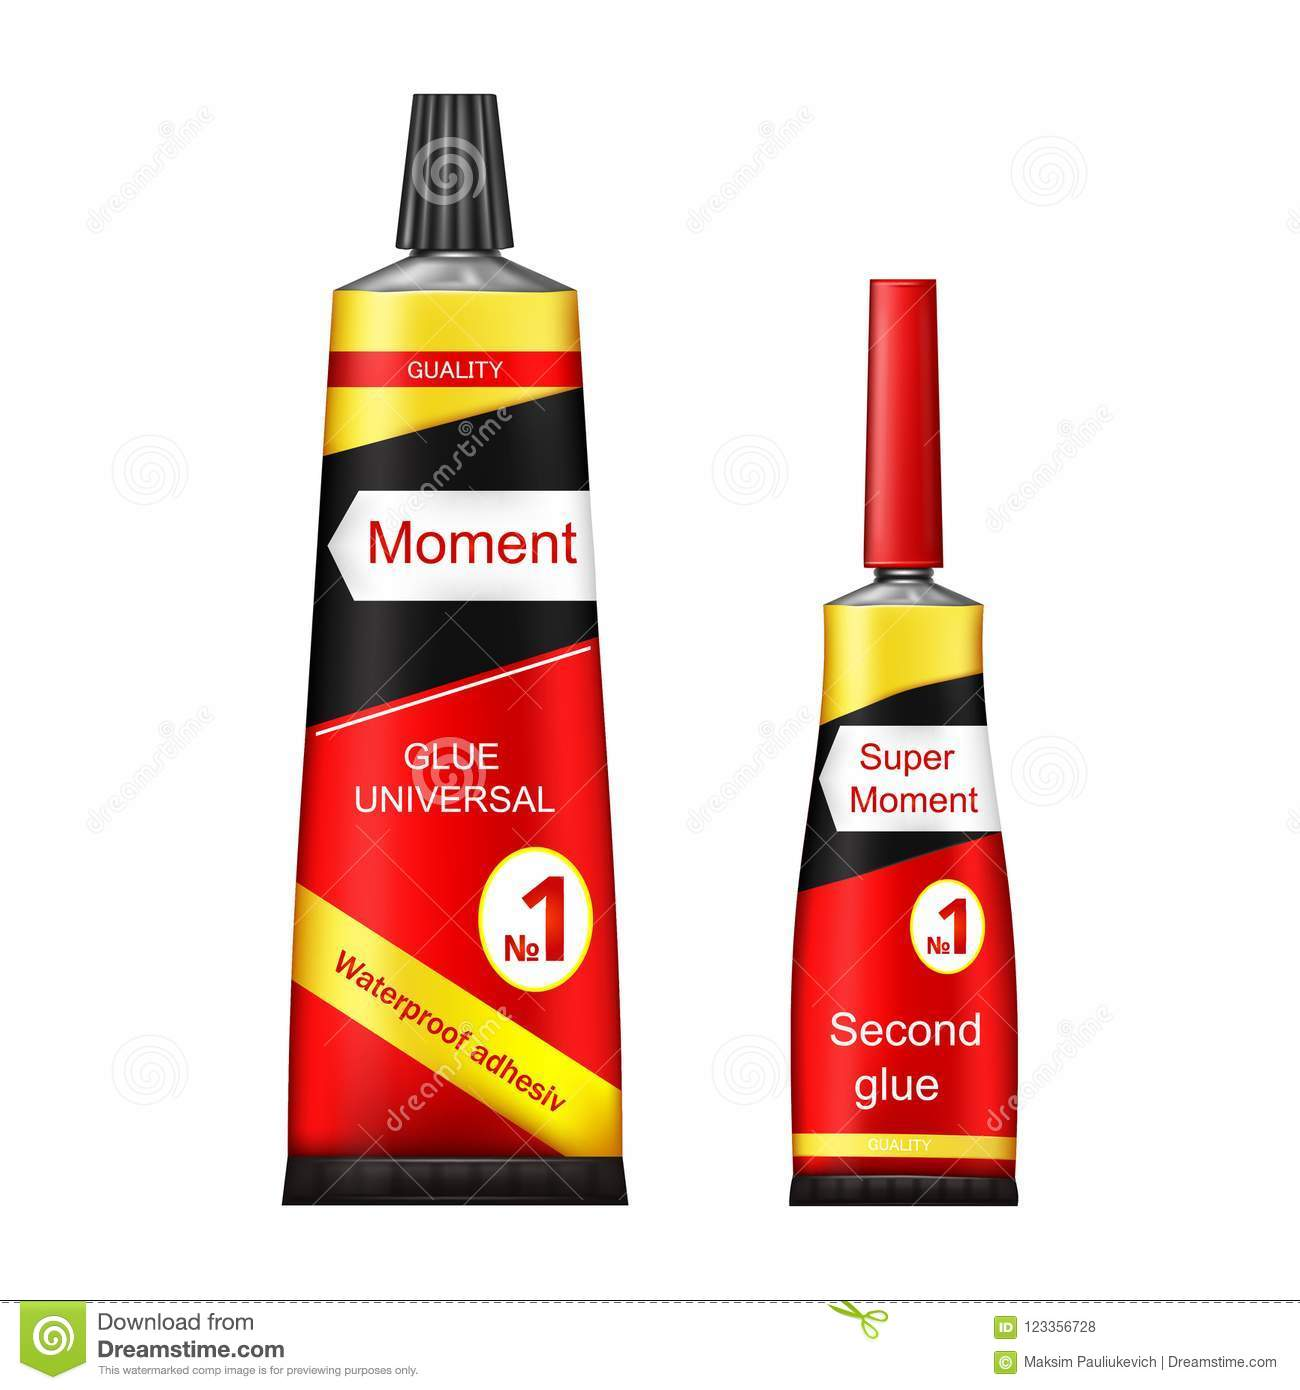 How to glue the glue moment 59